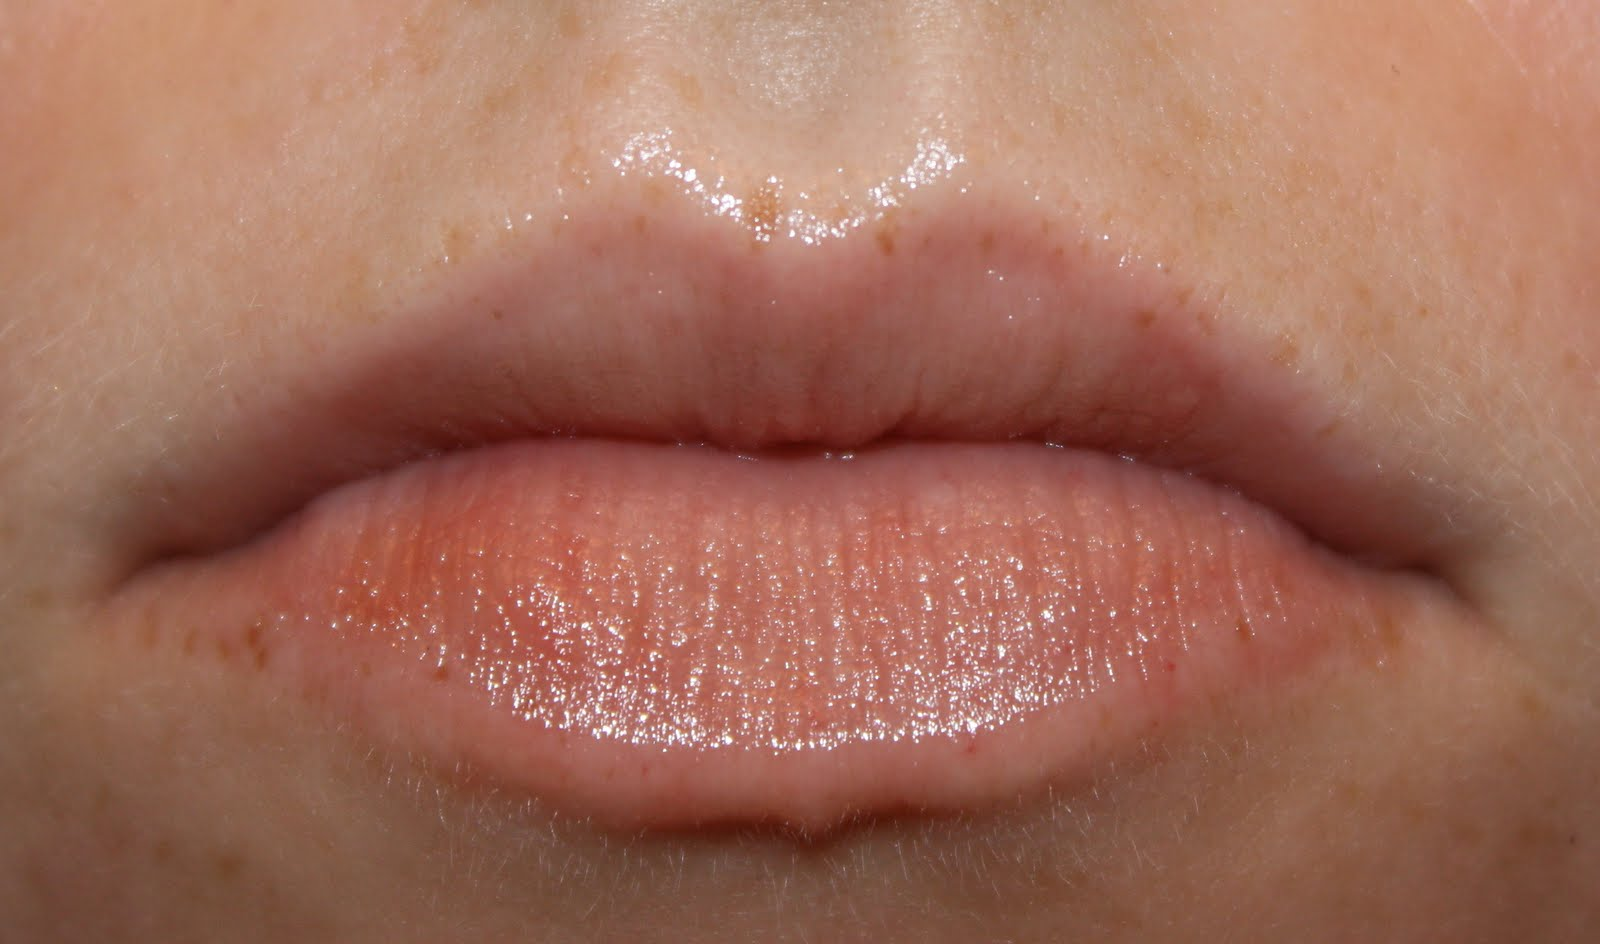 allergic reaction to chapstick brand? | Yahoo Answers